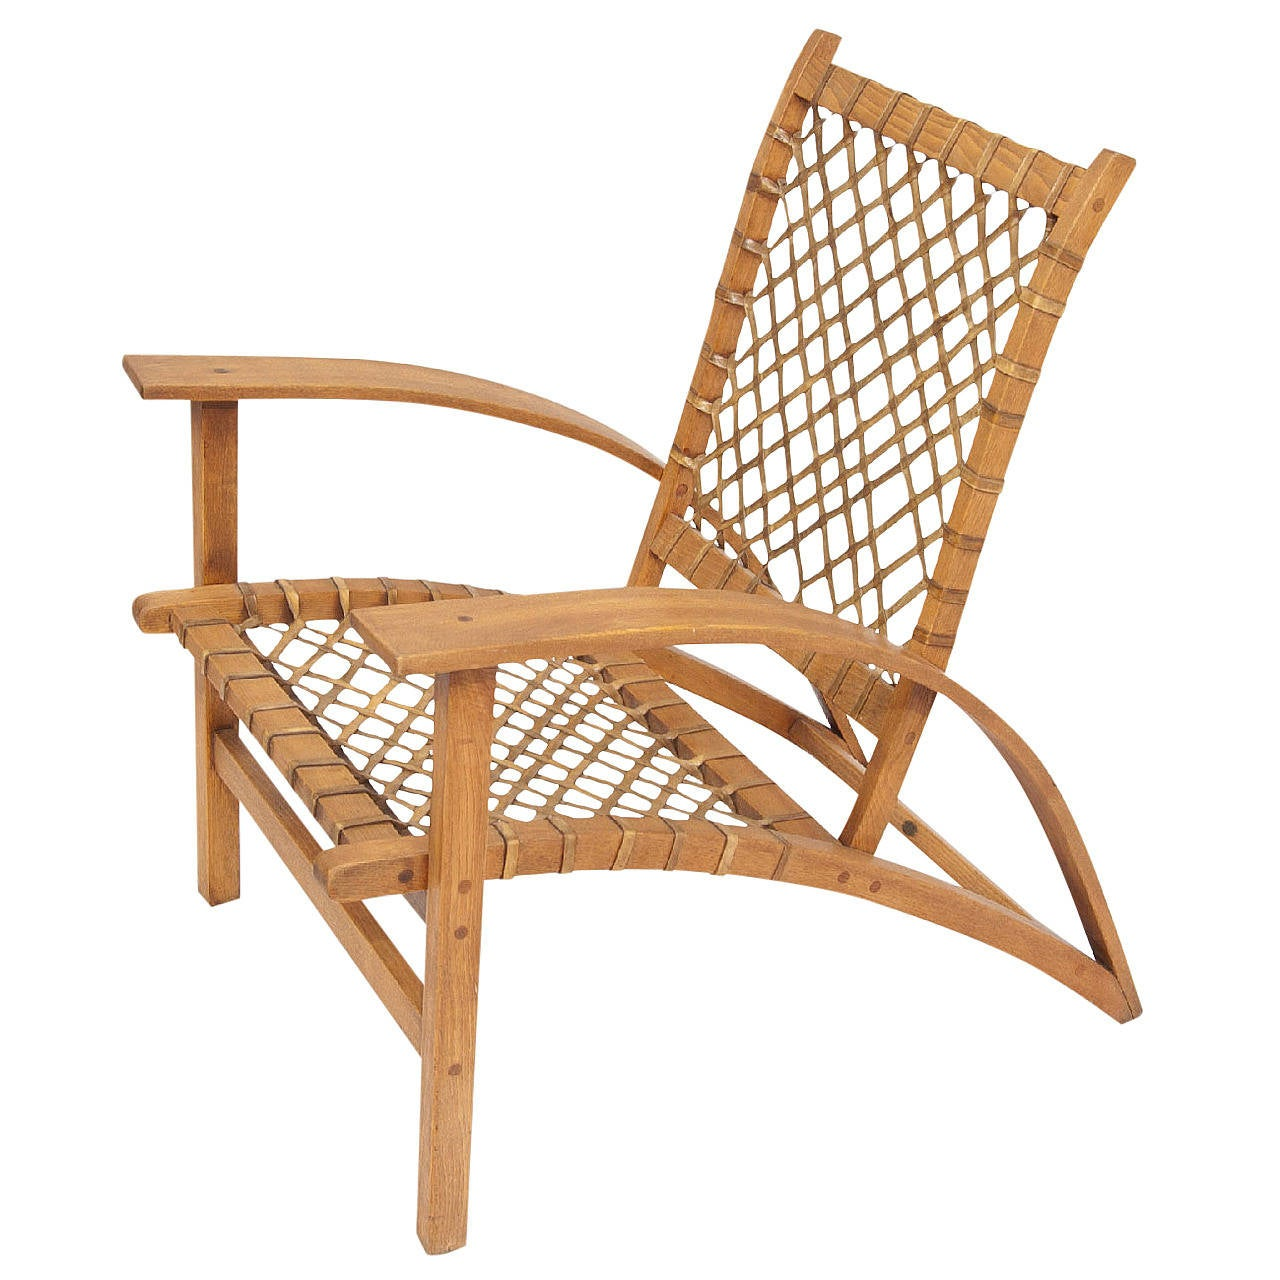 Quot Sno Shu Quot Vermont Tubbs Armchair For Sale At 1stdibs